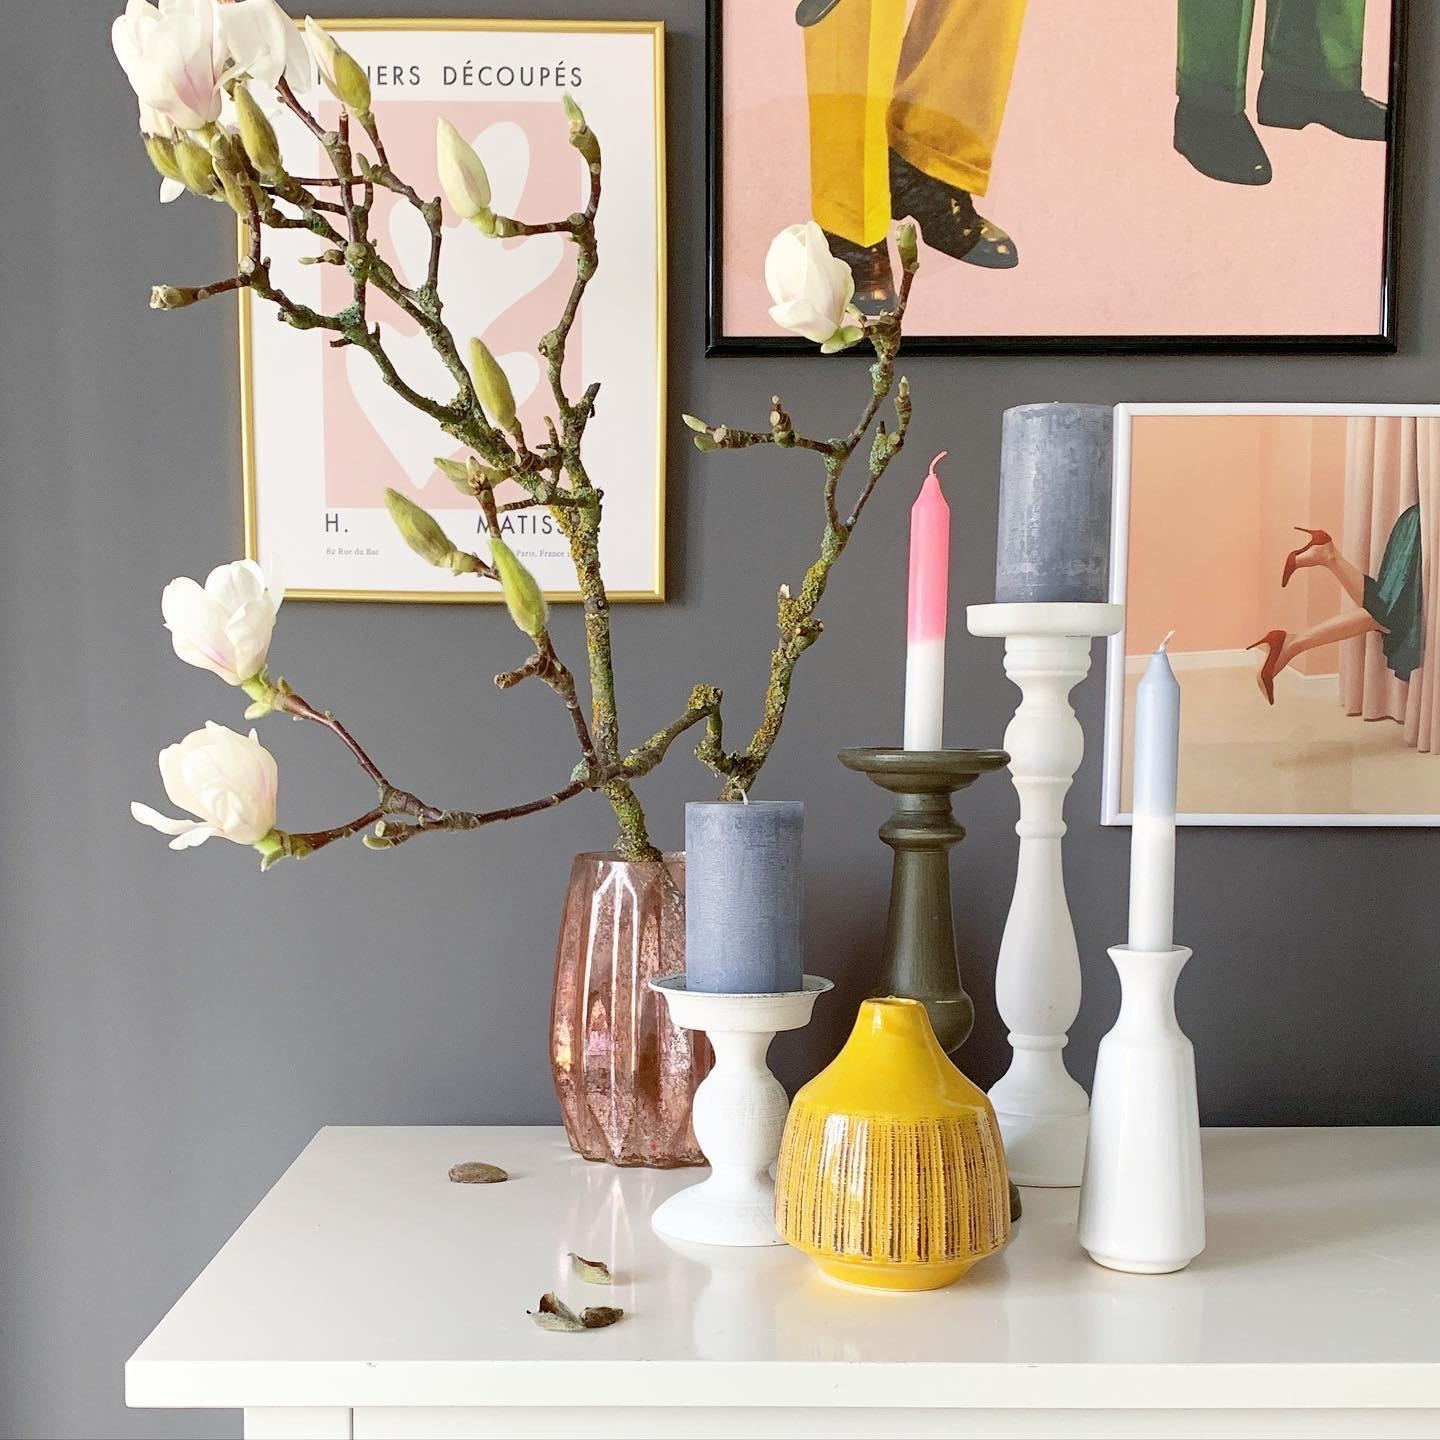 Springvibes colorfulhome gelbliebe fruehlingsgefuehle magnolien farbenfrohwohnen  8aef3bc7 56be 444e b5eb 78a31aa13b40